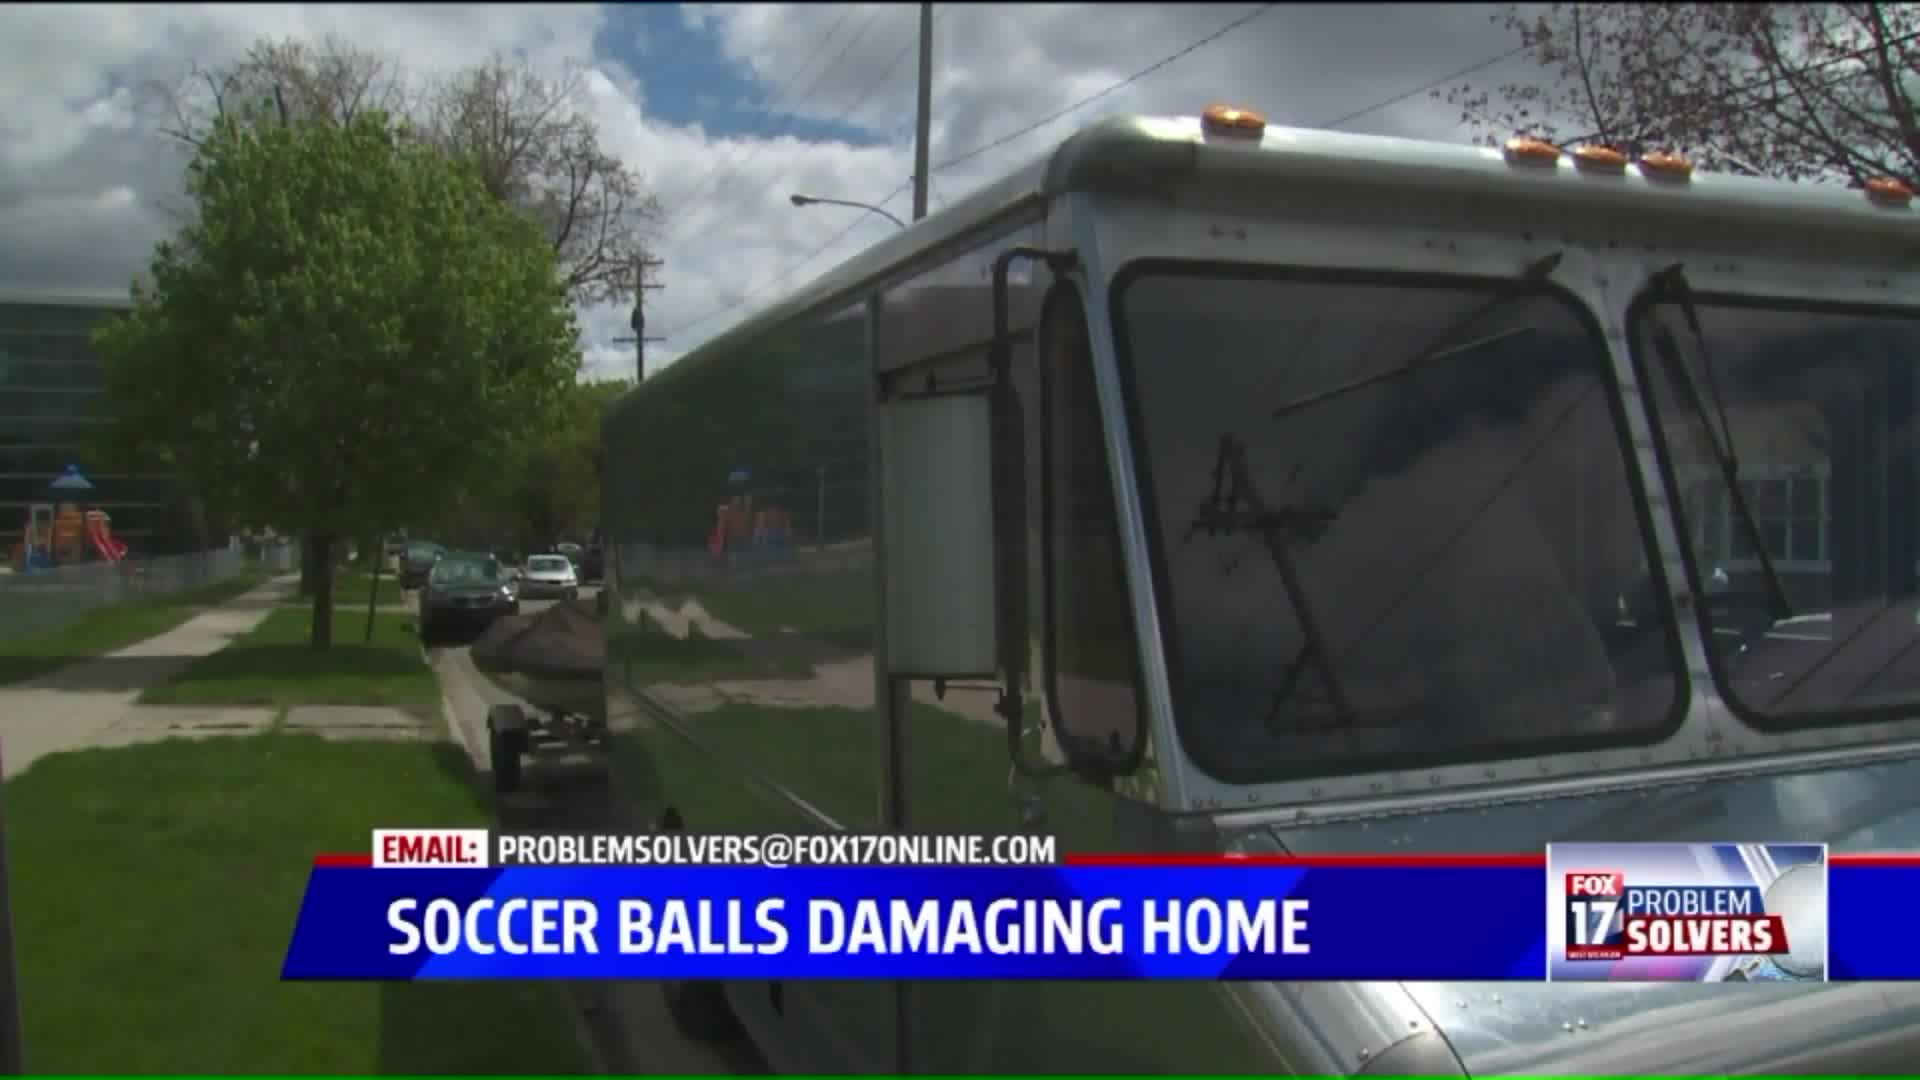 Man Says Soccer Balls From School Have Been Damaging His Home For Years